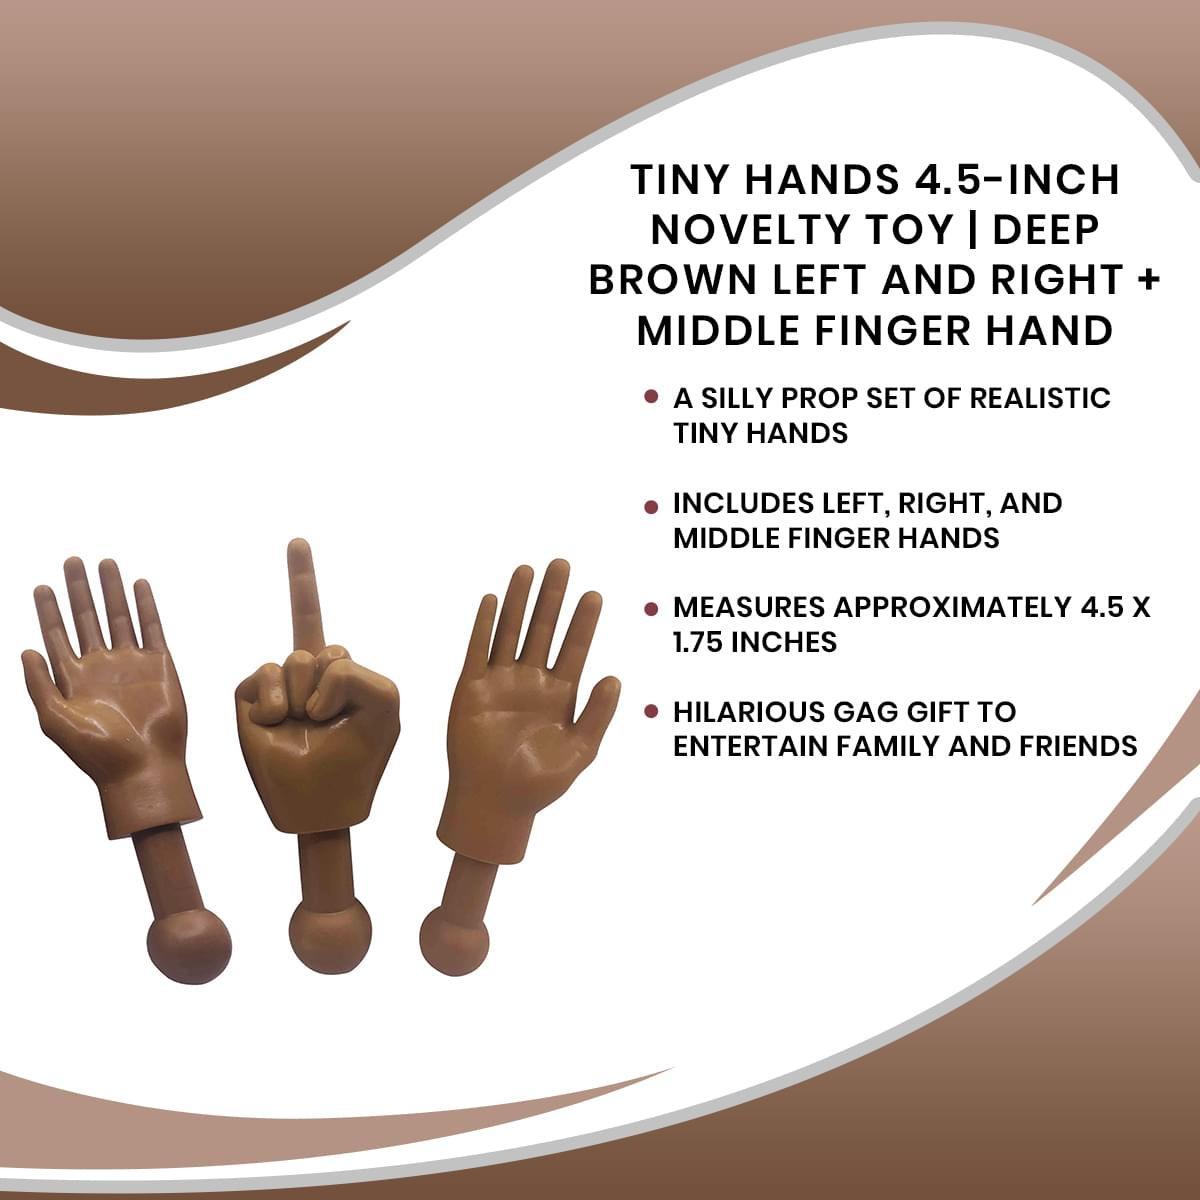 Tiny Hands 4.5-Inch Novelty Toy | Left and Right + Middle Finger Hand Deep Brown